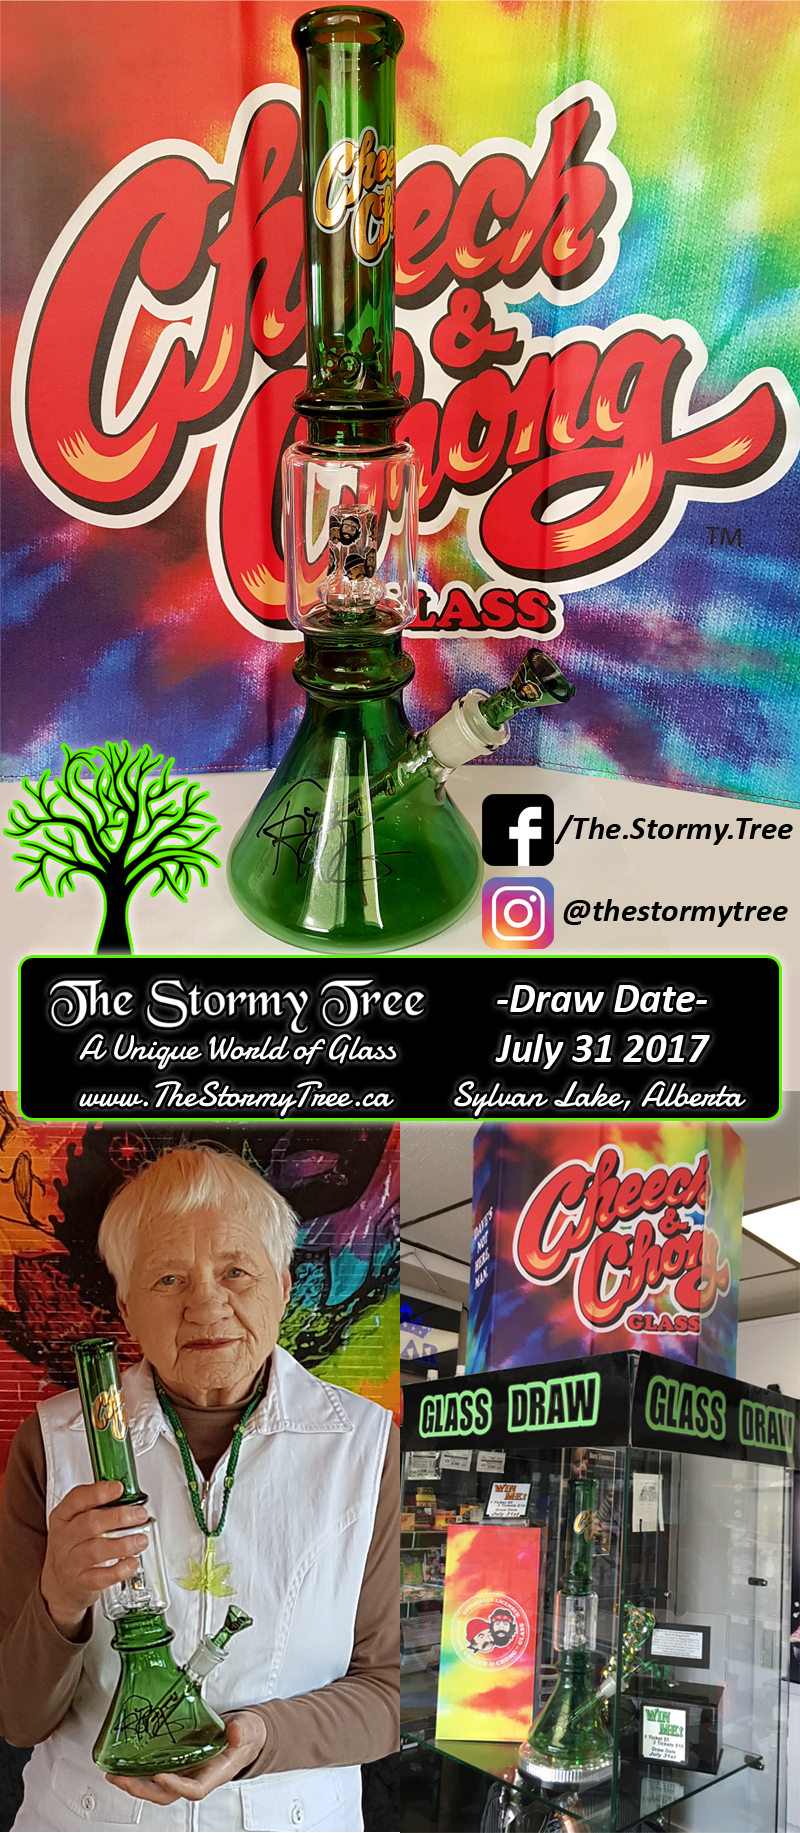 The_Stormy_Tree_Chong_Draw